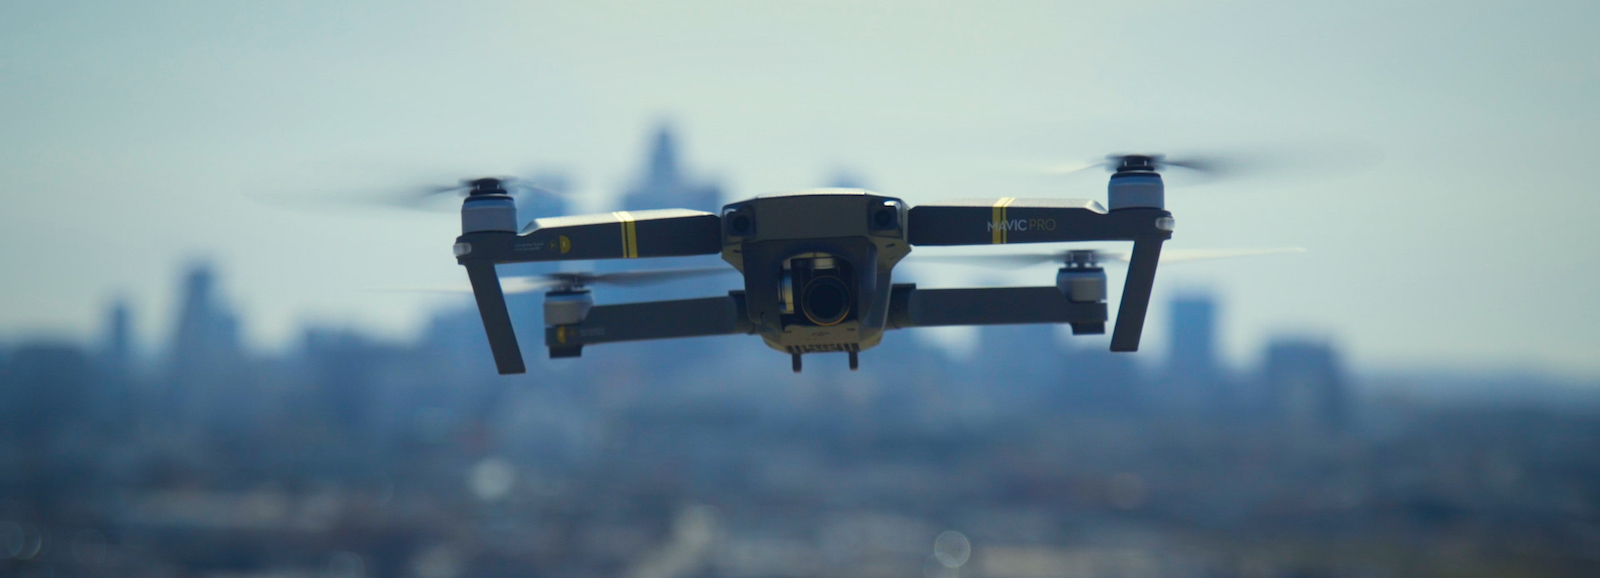 6 Essential Steps to Becoming a Drone Pilot | ShareGrid Blog